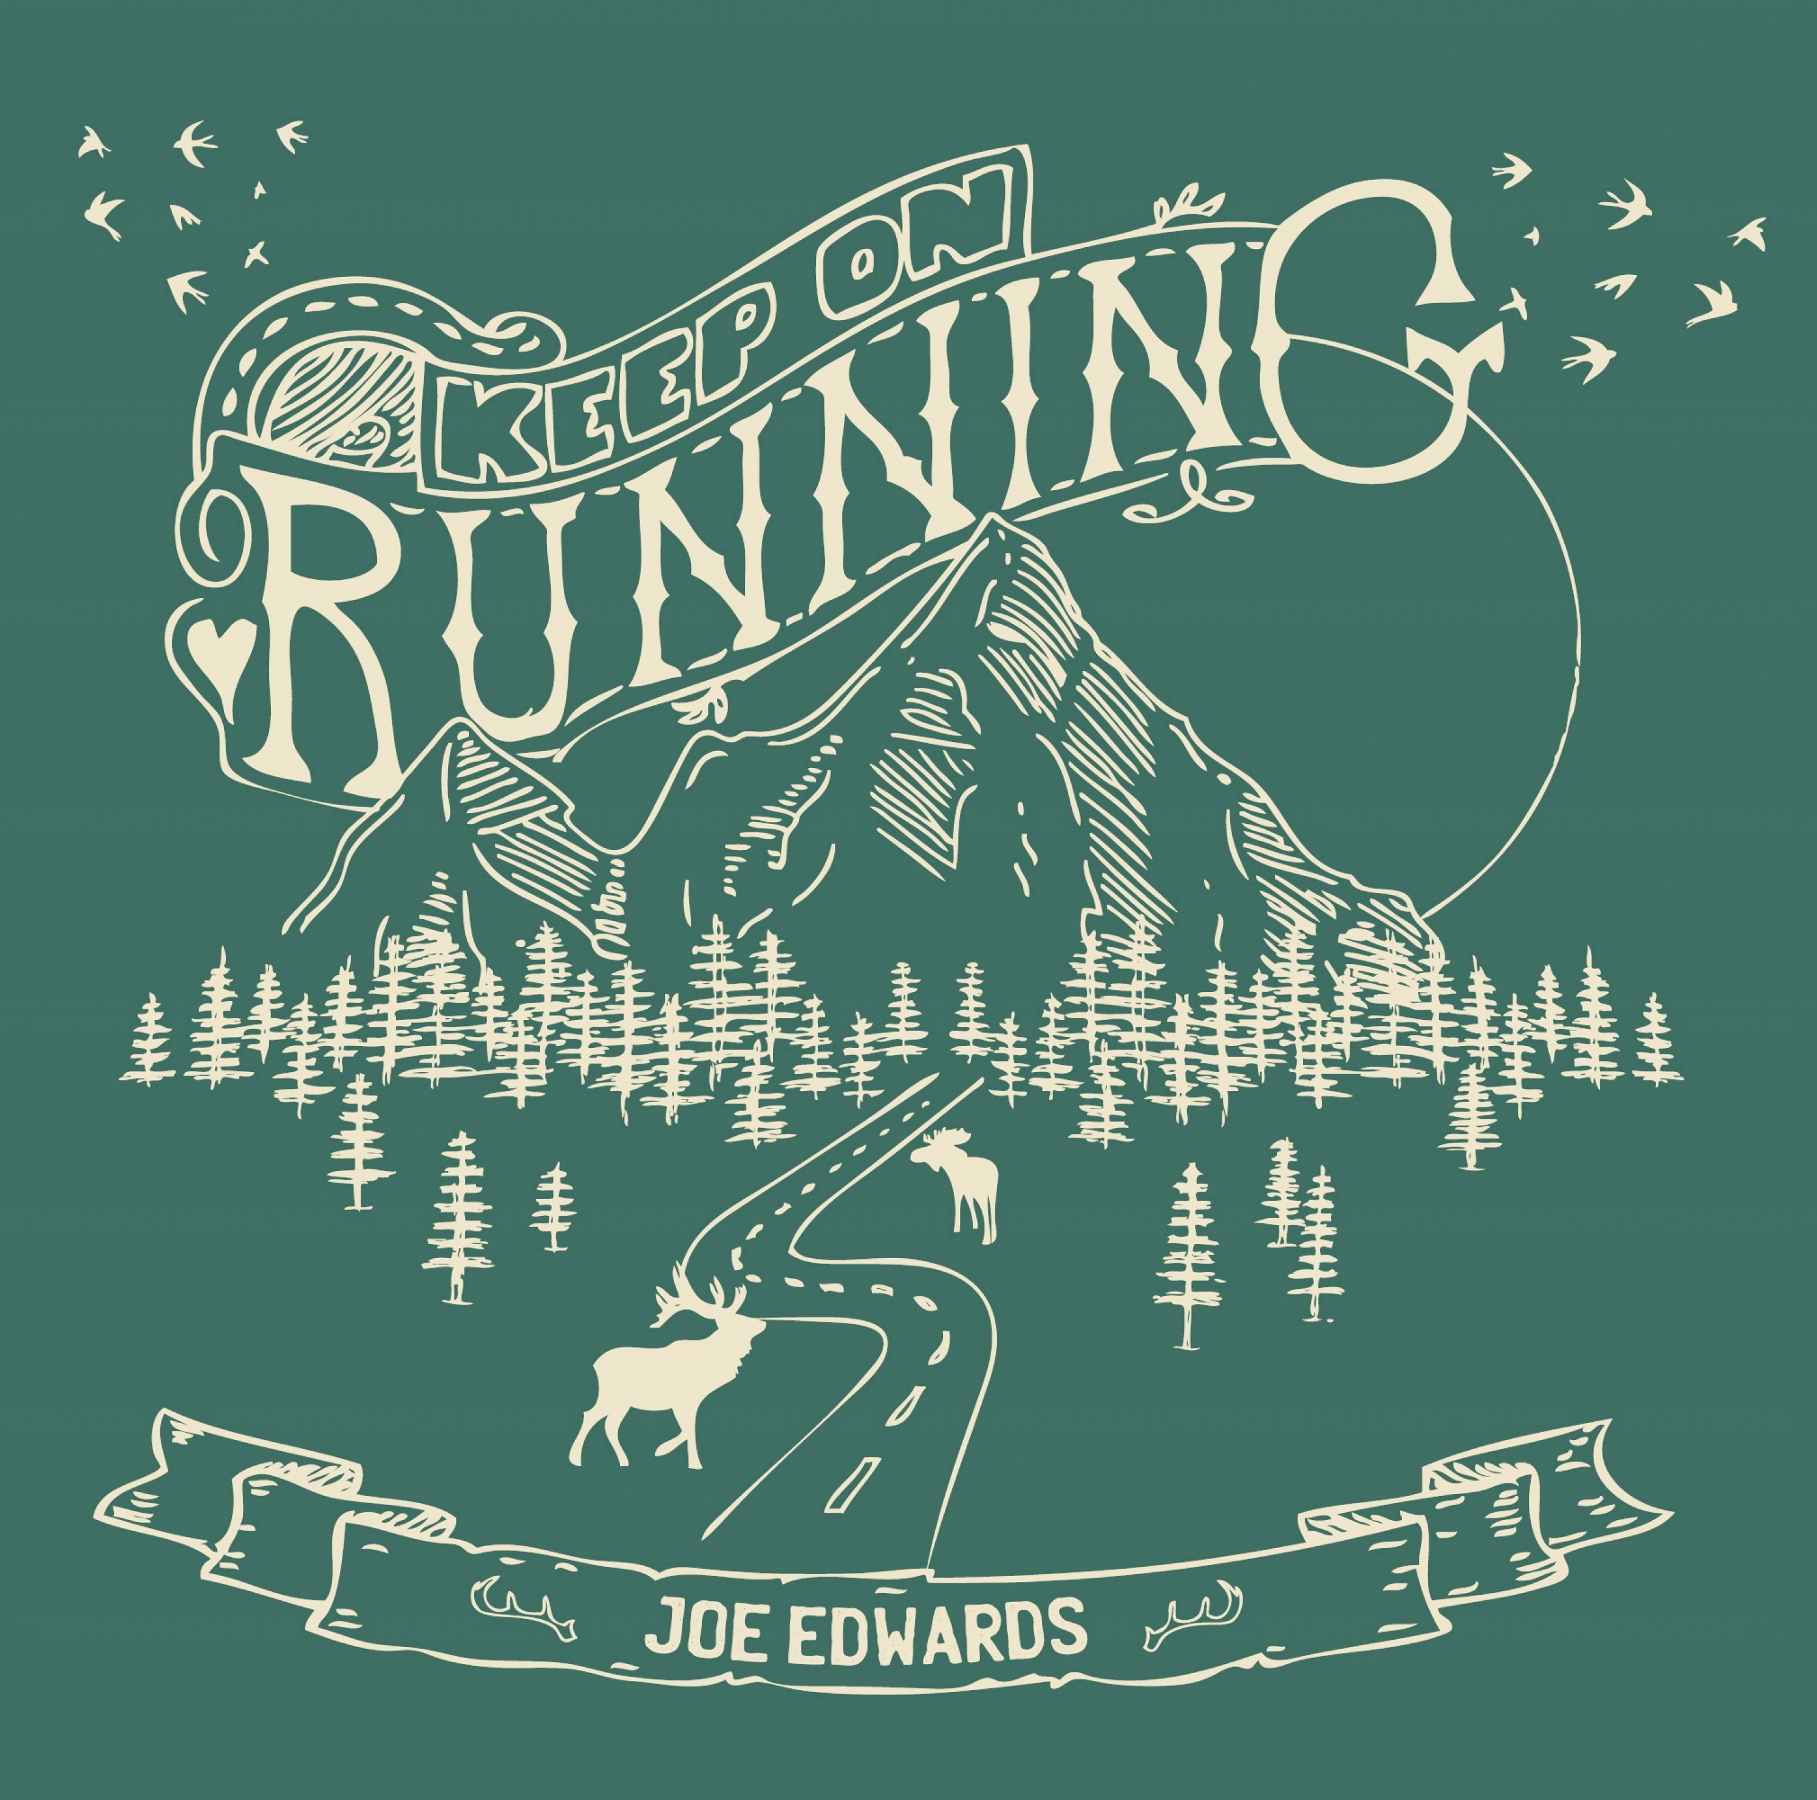 Joe Edwards - 'Keep On Running' - cover (300dpi)